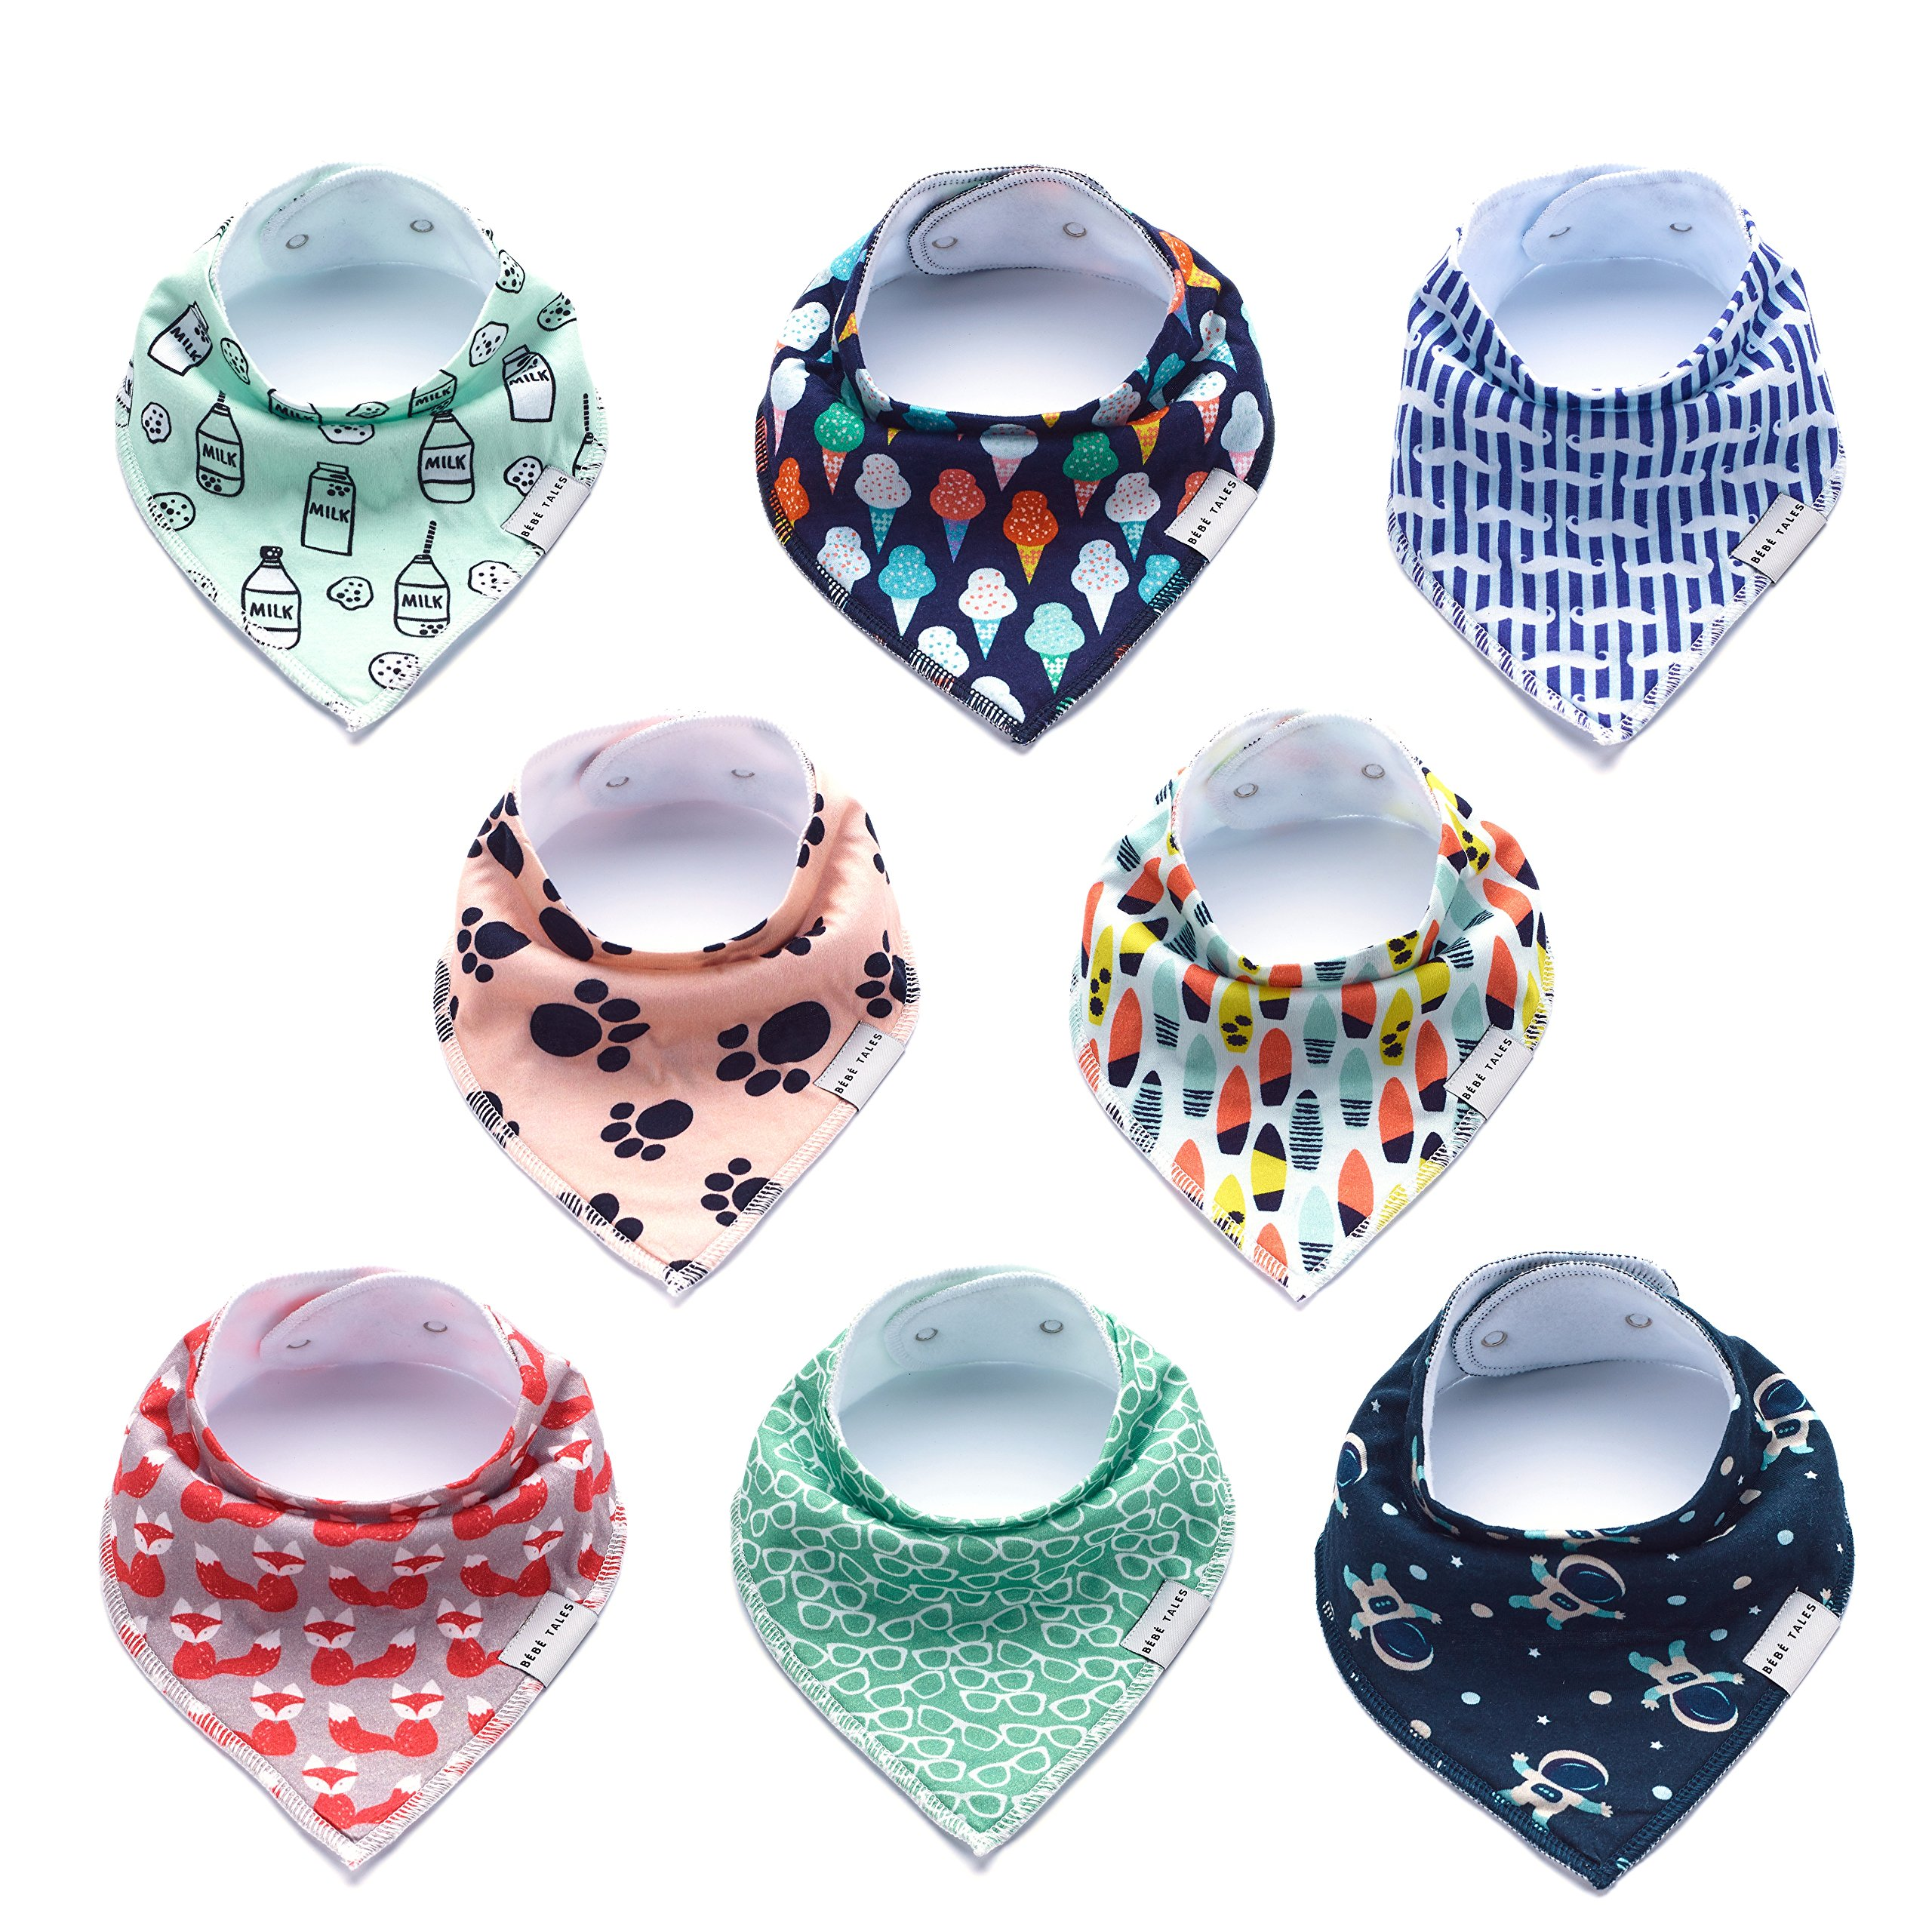 Premium Bandana Bibs for Boys Extra Soft - 8-Pack Baby Boy Drool Bib for Drooling and Teething, Natural Cotton, Hypoallergenic, Organic, Super Absorbent, Bandanas for Infant Boys Girls Toddler, Unisex